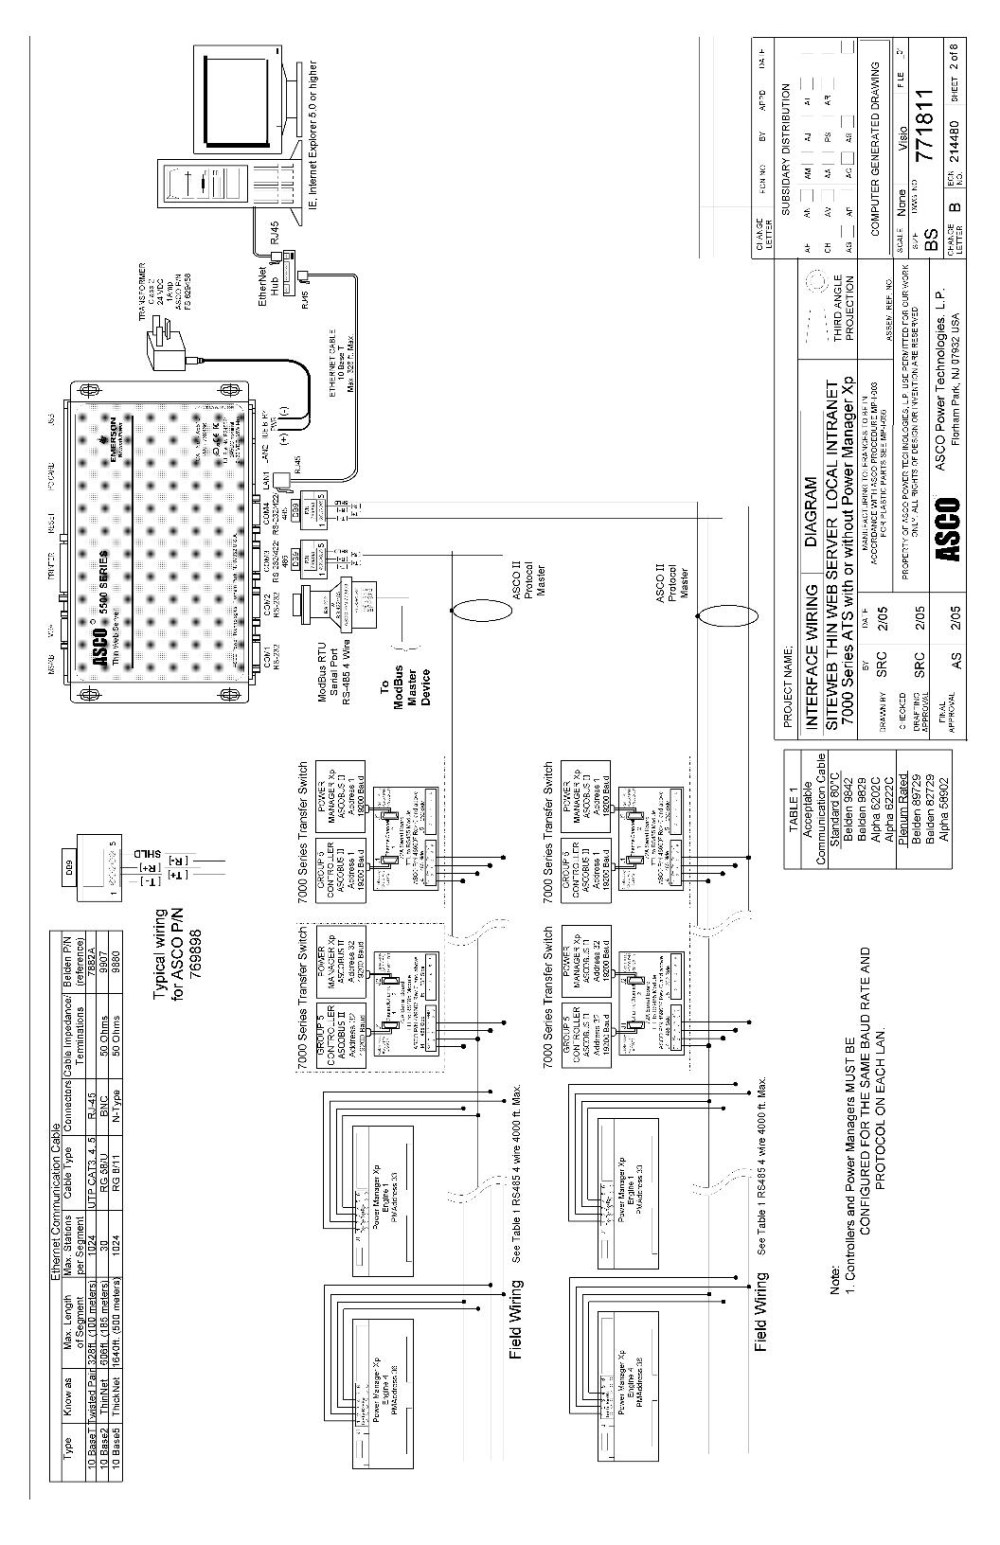 medium resolution of asco 8320g194 wiring diagram wiring diagrams valueasco series 300 wiring diagram wiring diagram inside asco 300